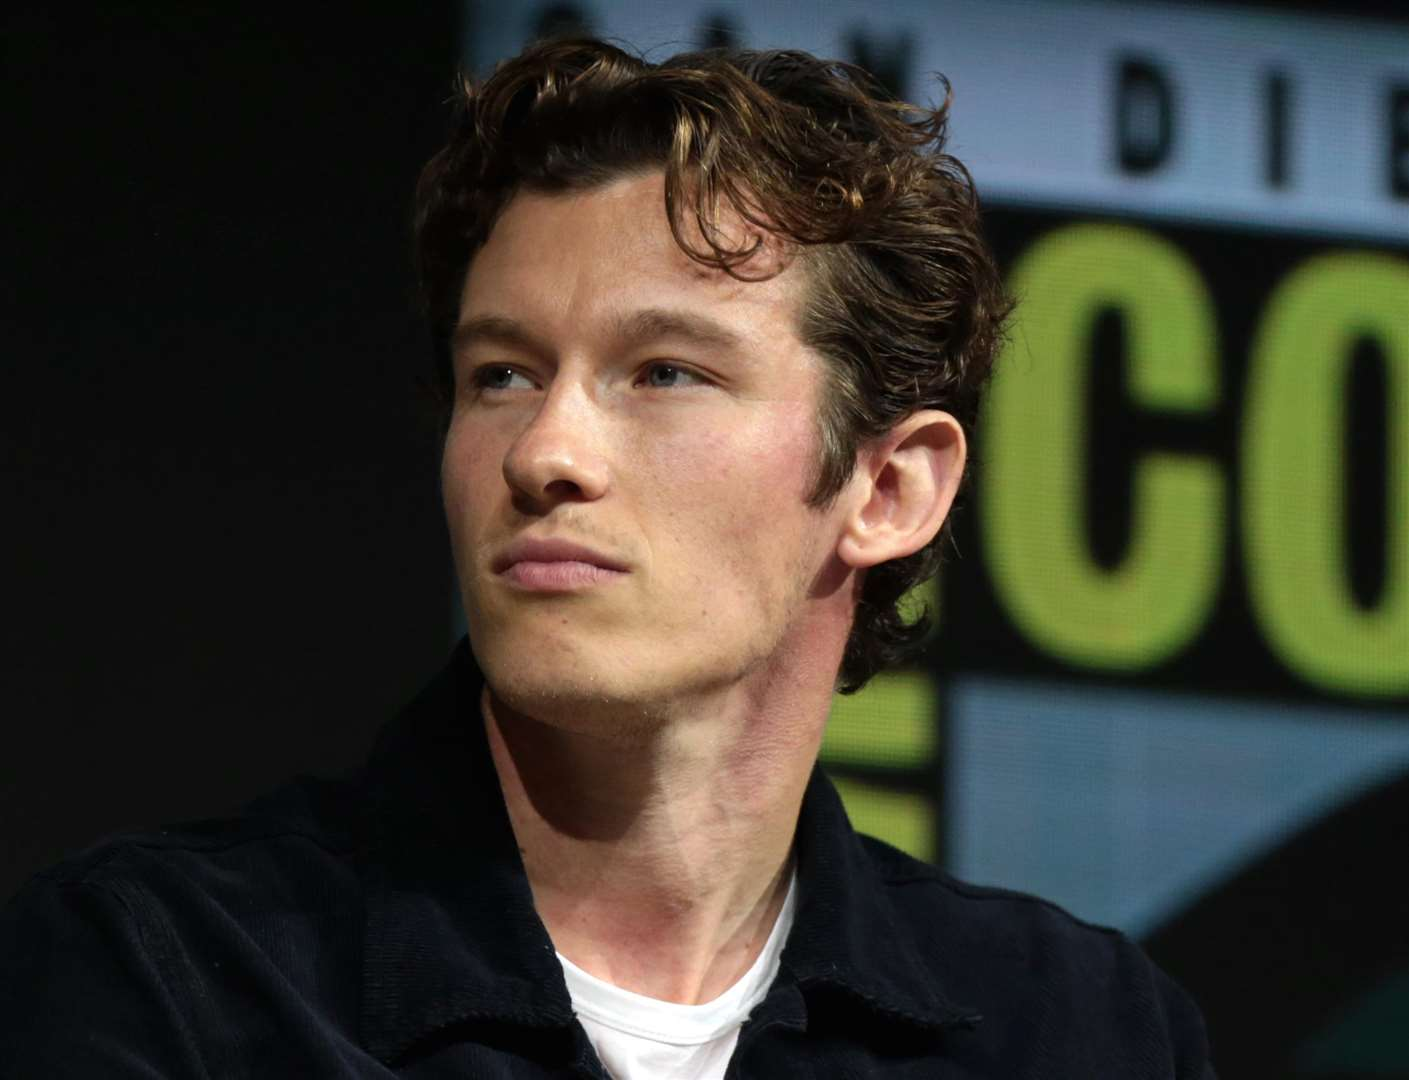 Callum Turner will star in The Capture